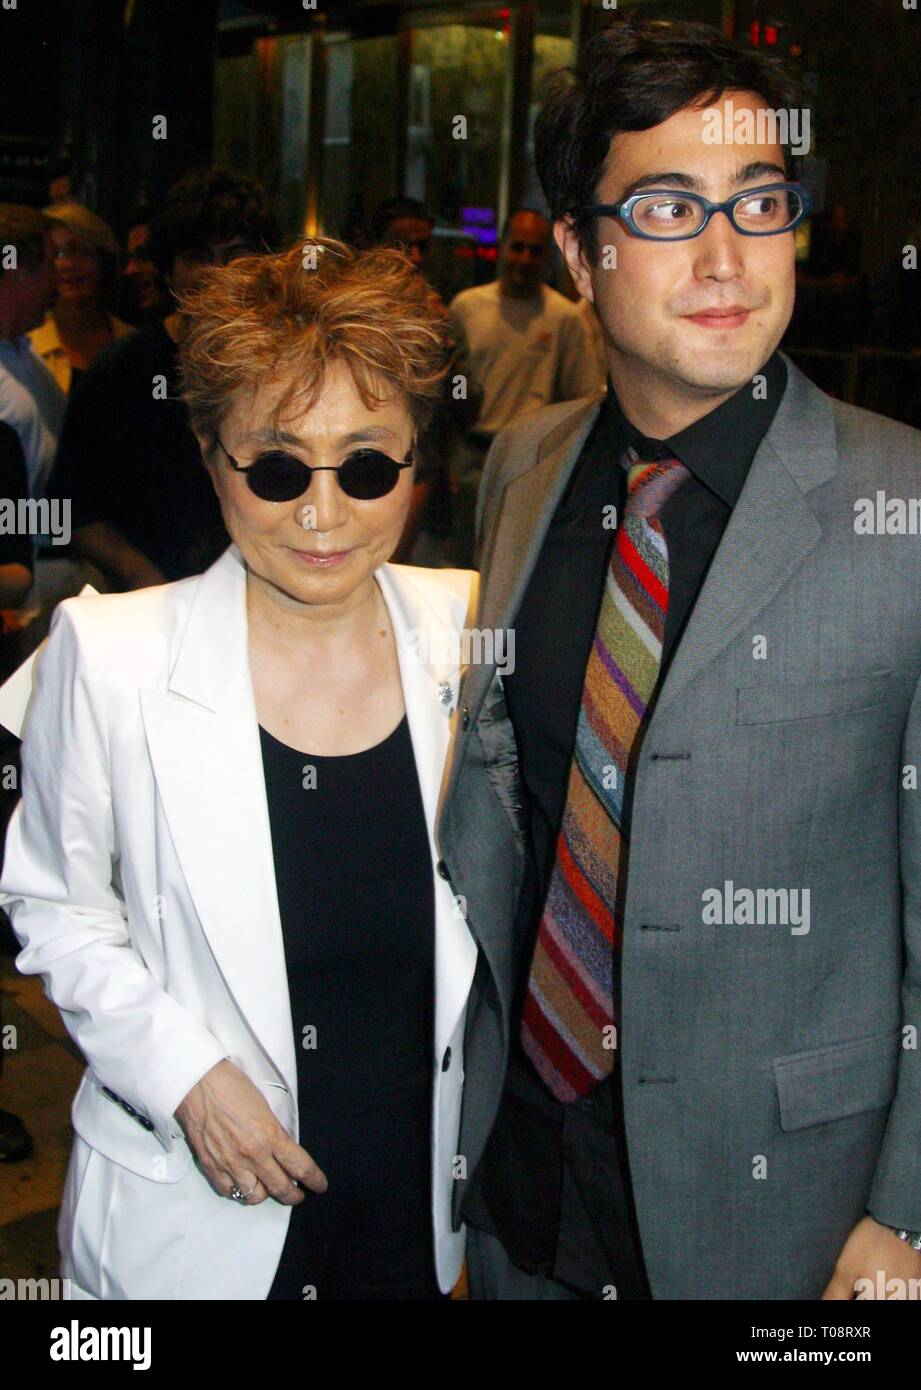 Son Of John Lennon And Yoko Ono High Resolution Stock Photography And Images Alamy